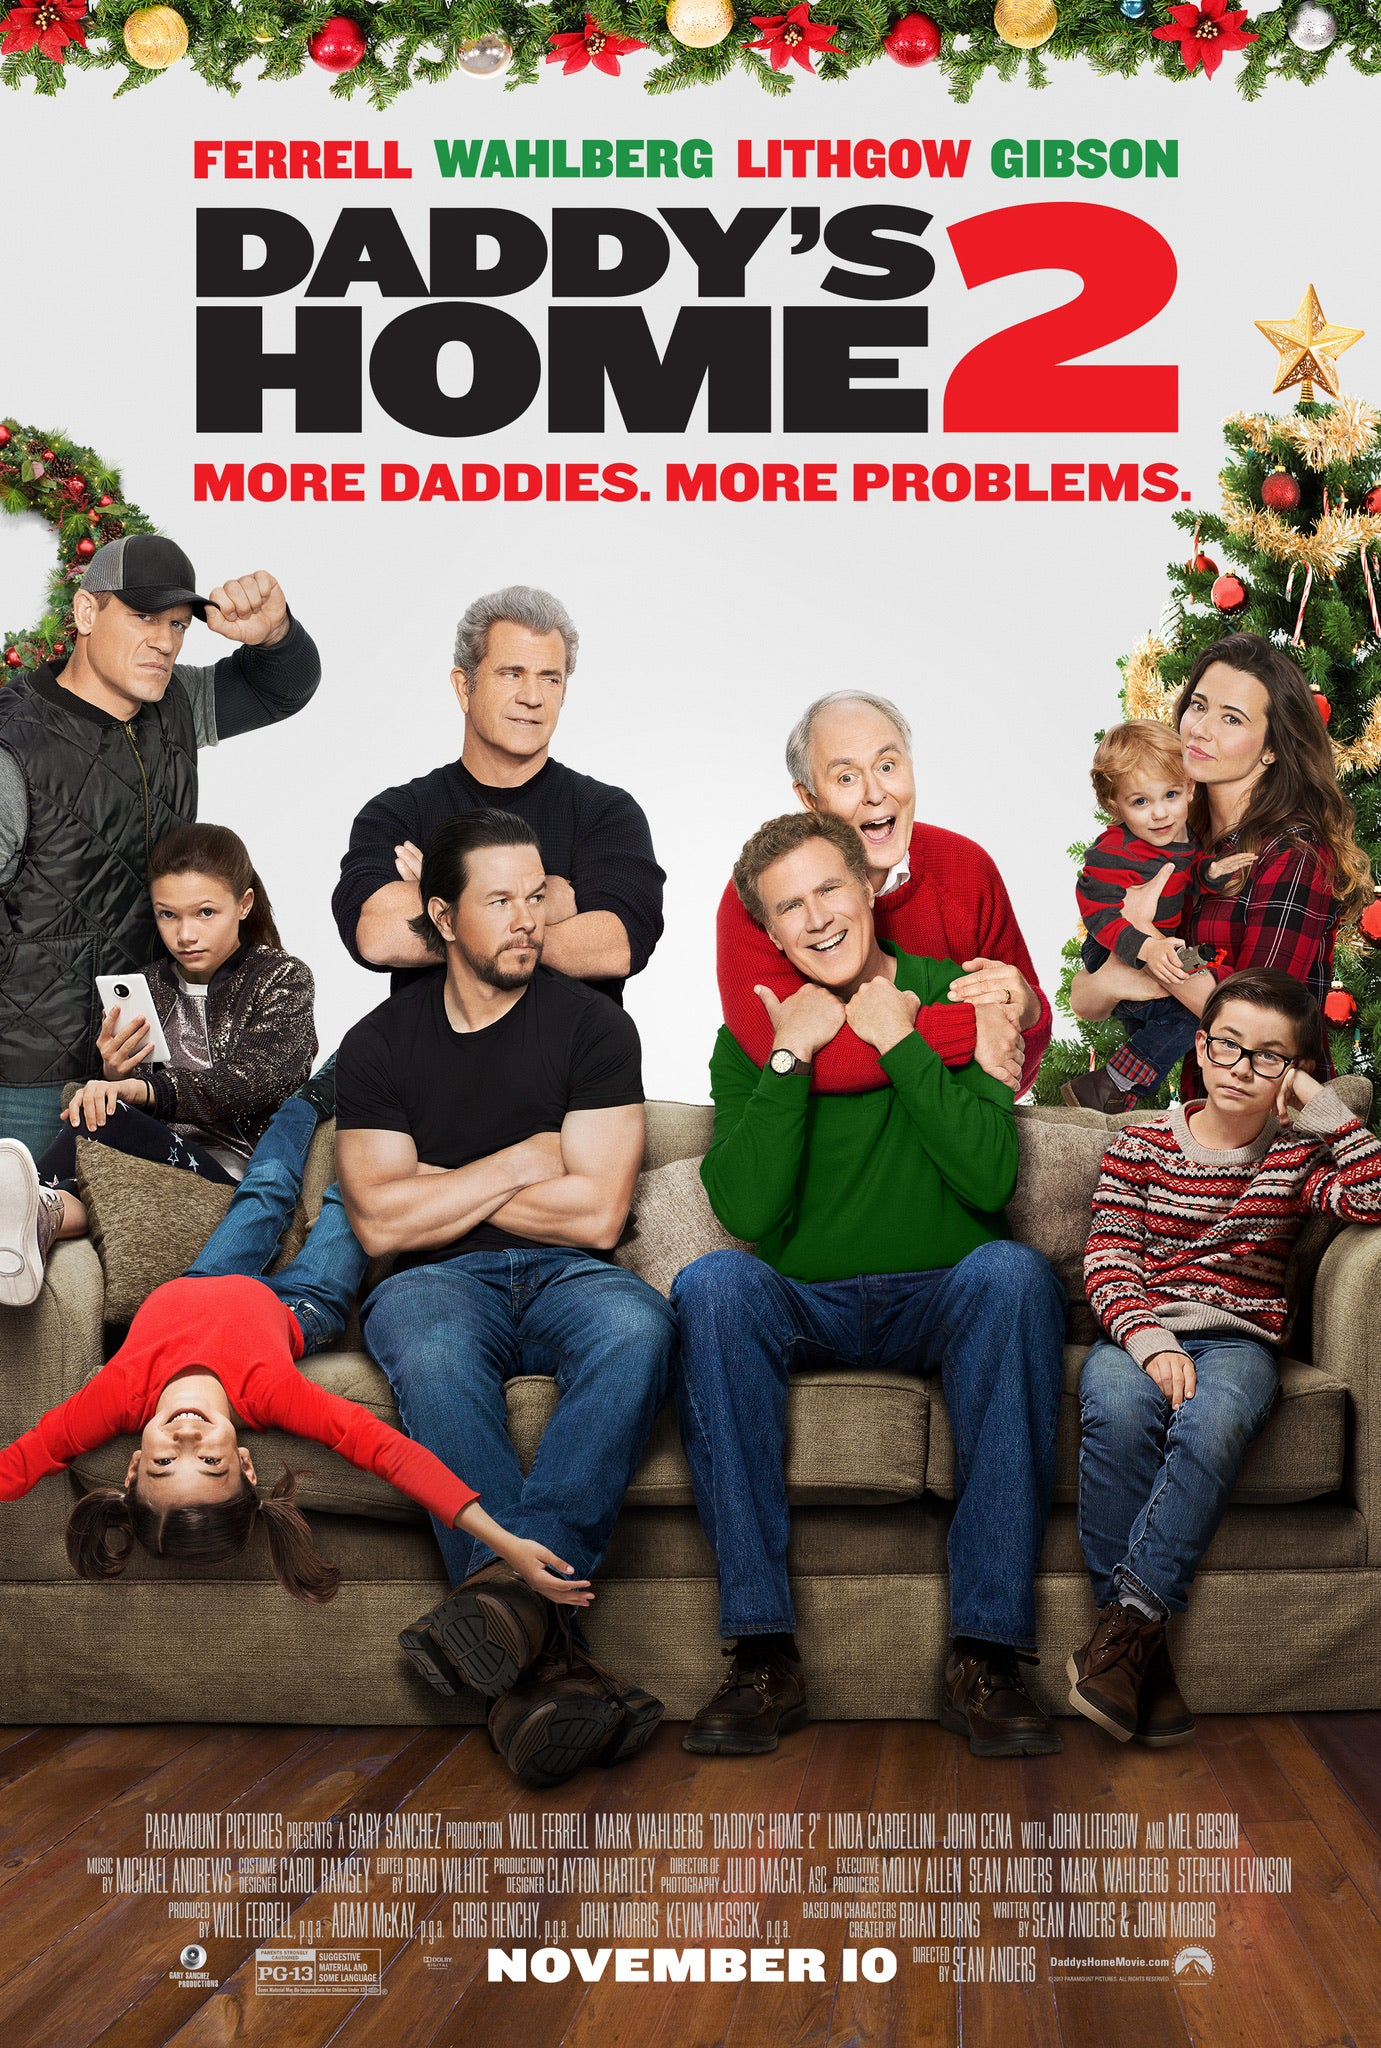 Daddy's Home 2 (2017) Vudu HD redemption only